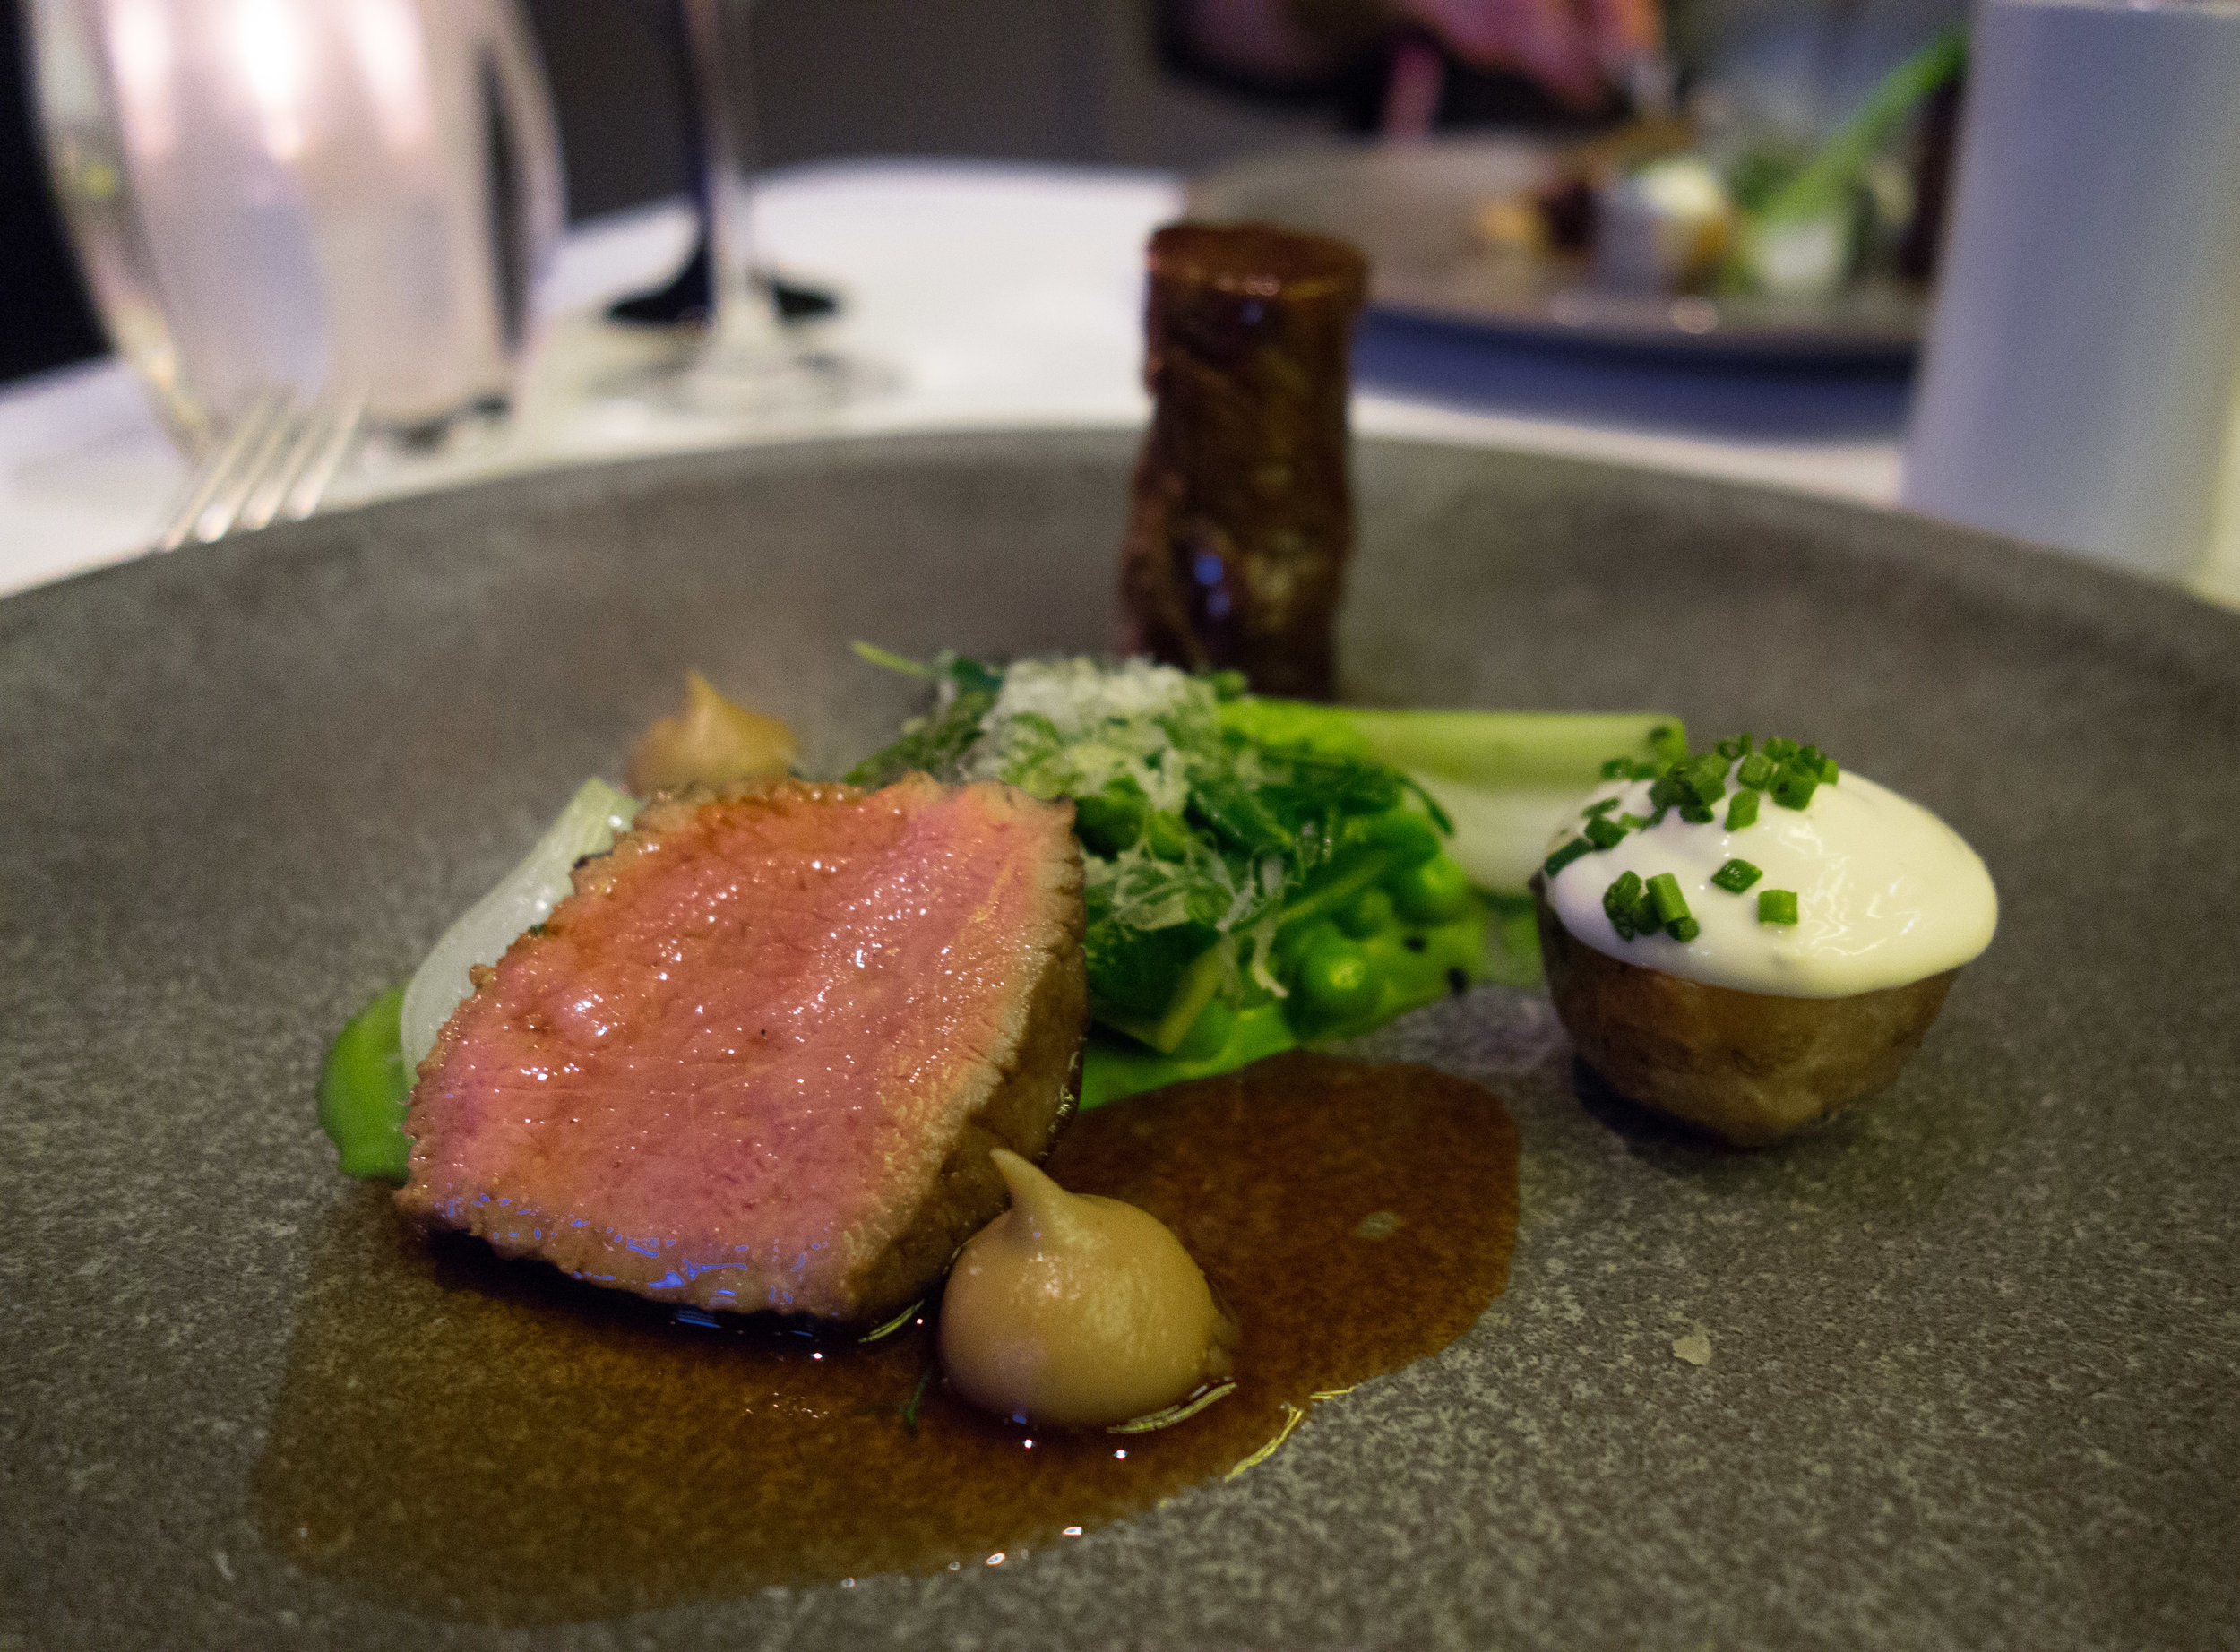 The Dower House Restaurant at The Royal Crescent Hotel & Spa - Bath - 9th June 2016